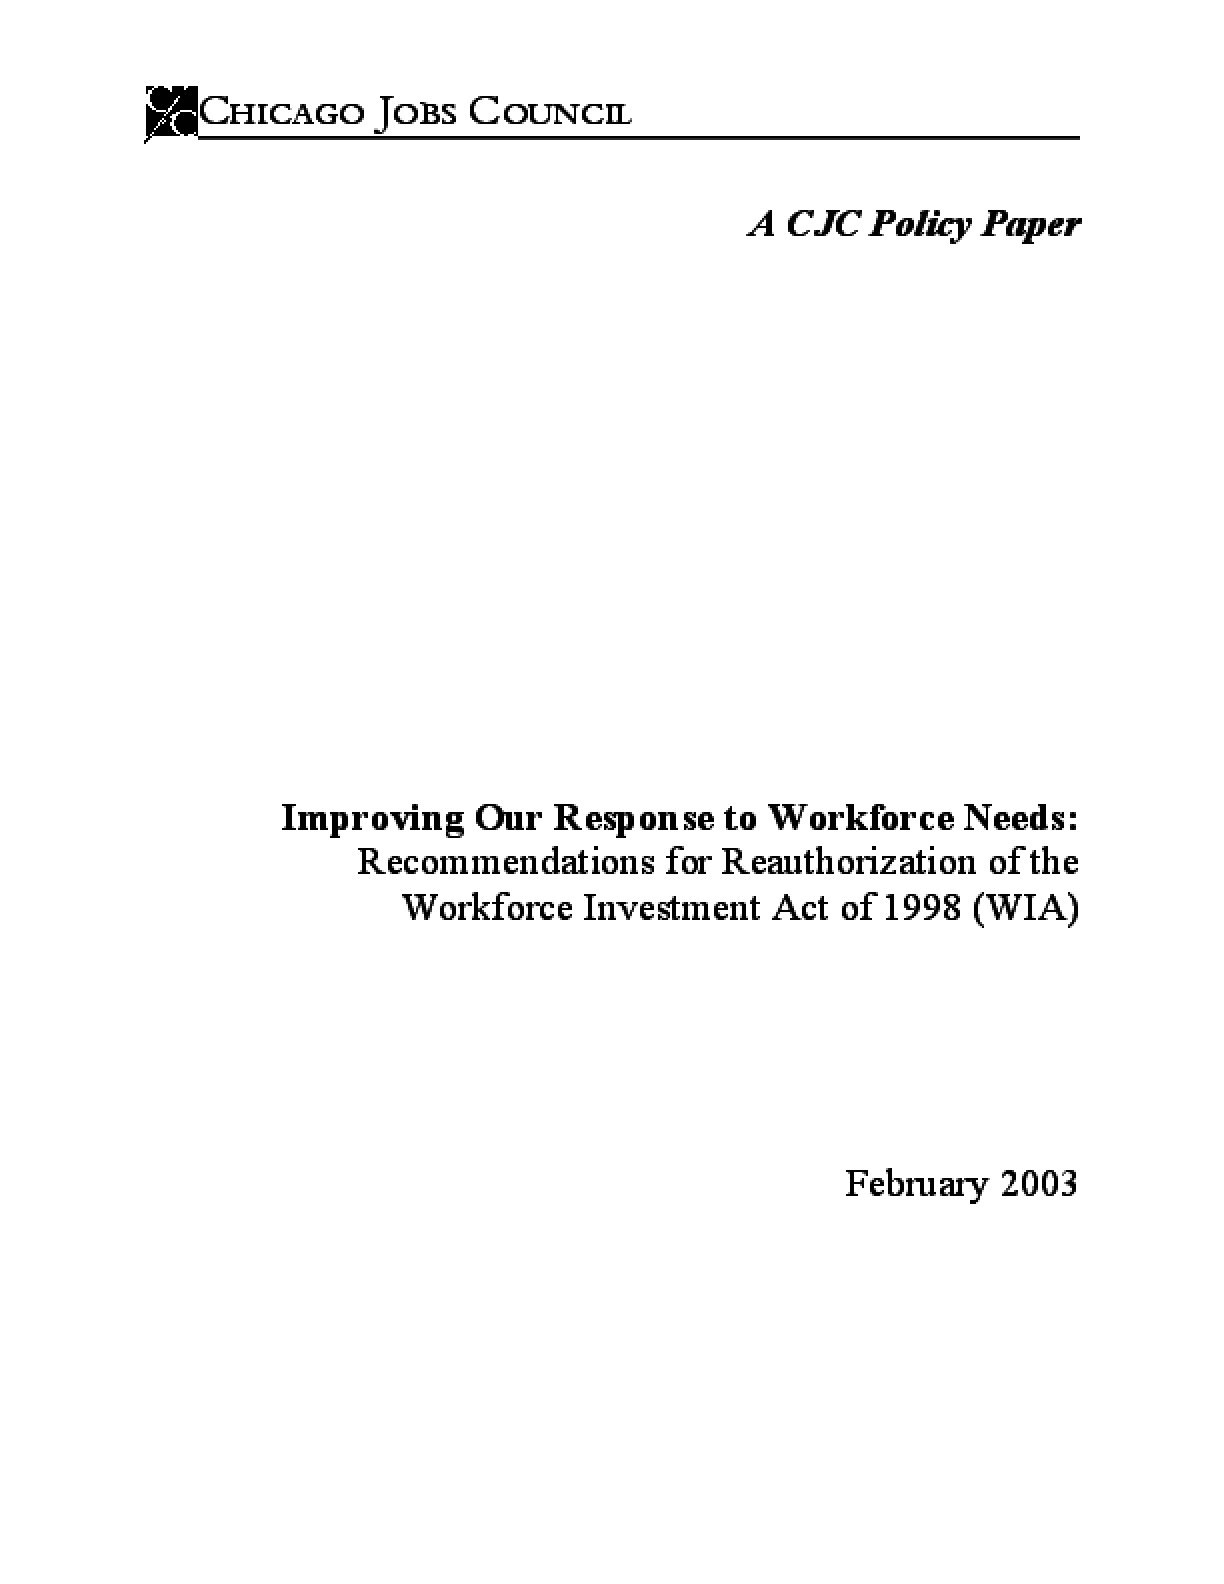 Improving Our Response to Workforce Needs: Recommendations for Reauthorization of the Workforce Investment Act (WIA)